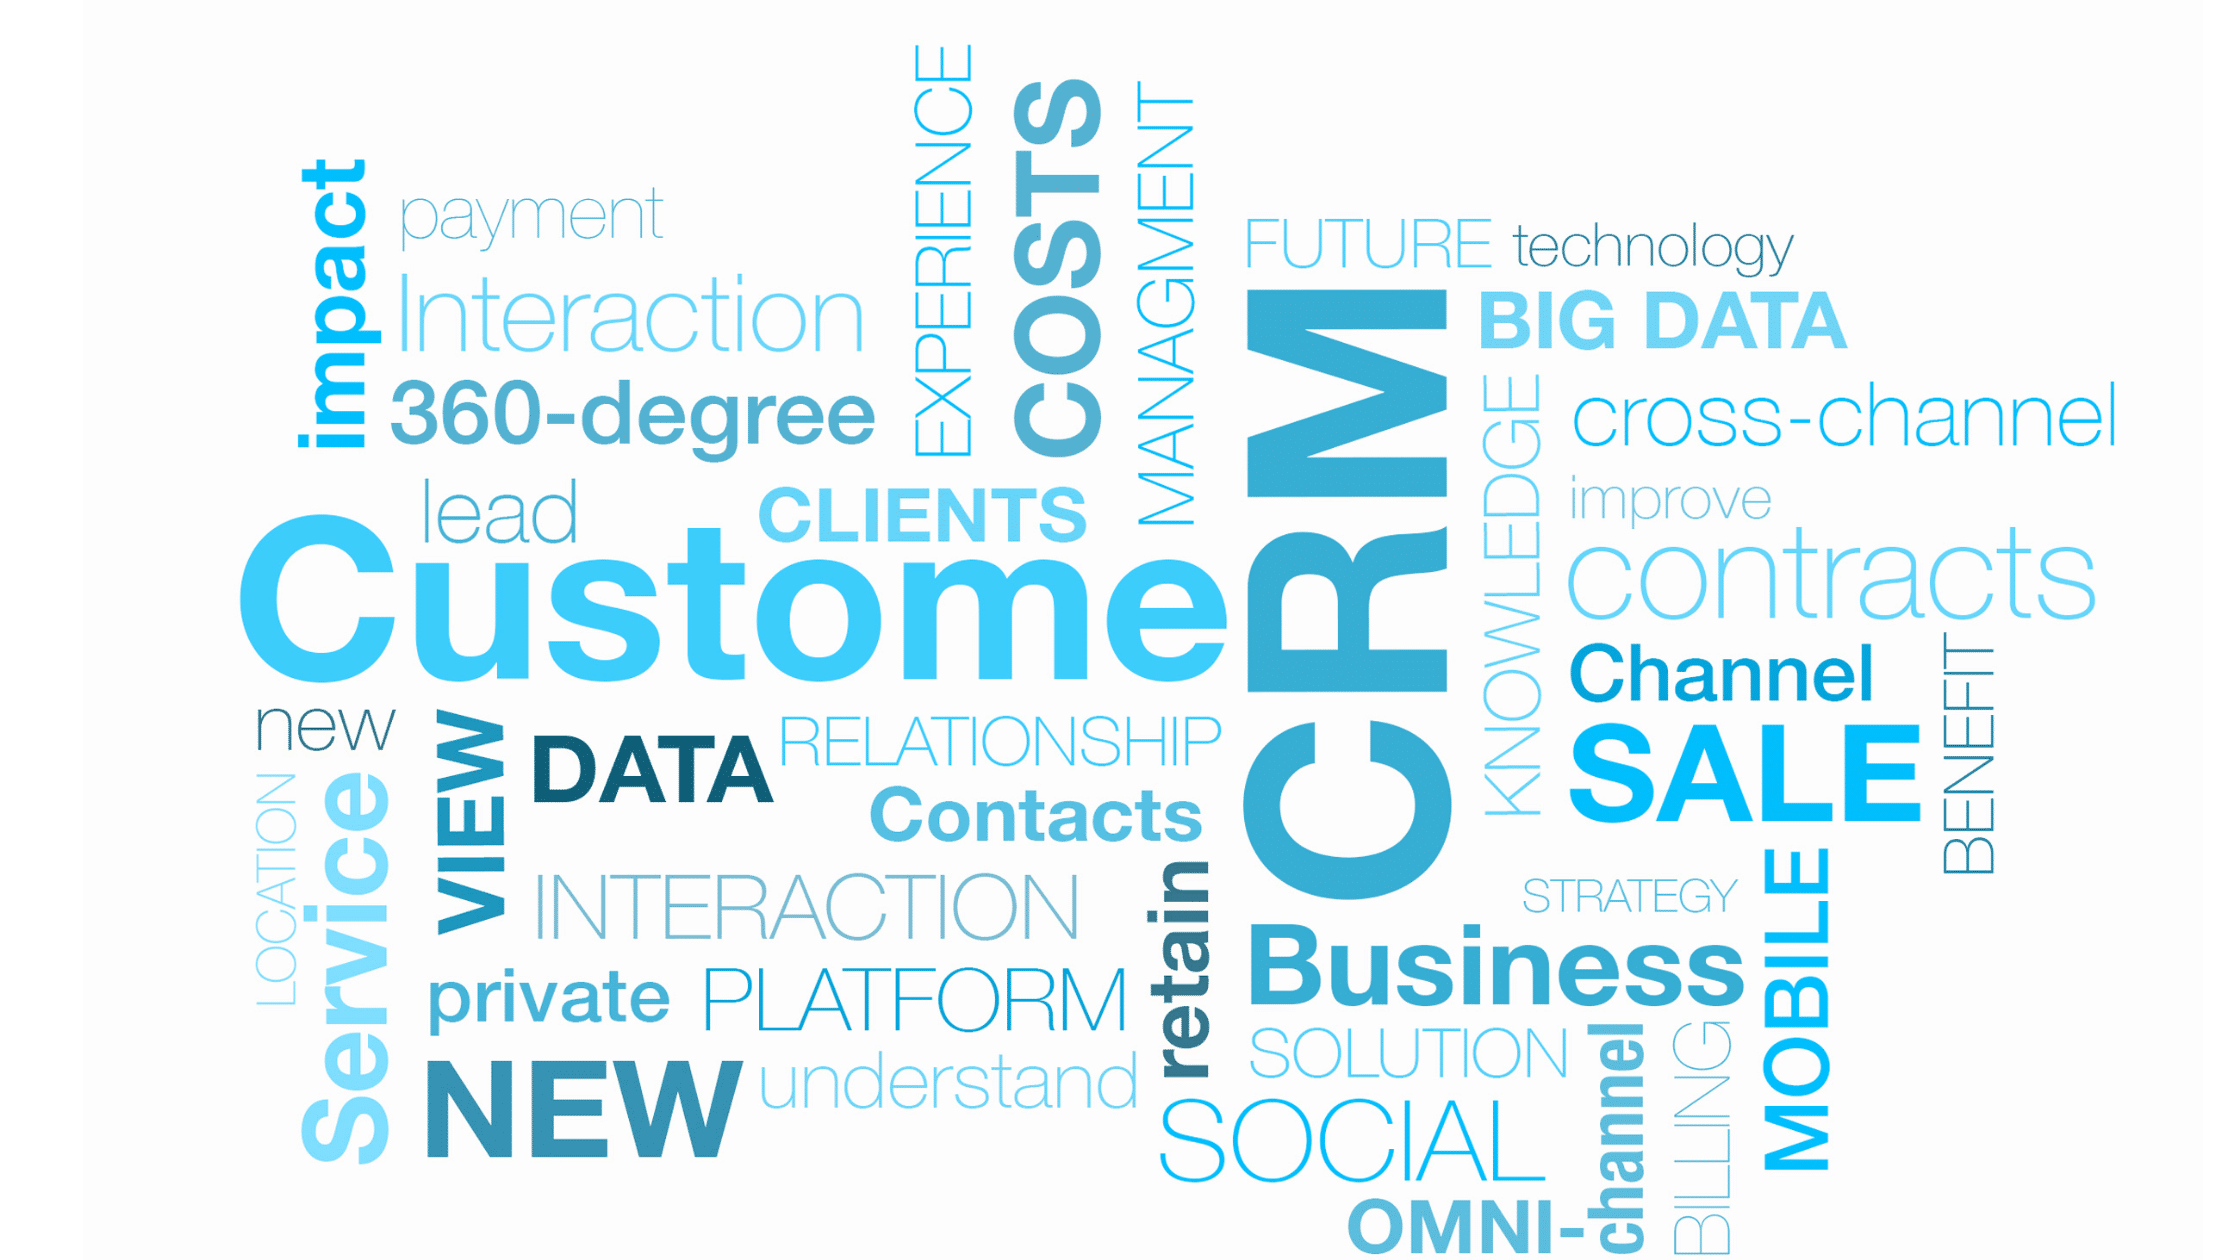 Top CRM trends for 2021